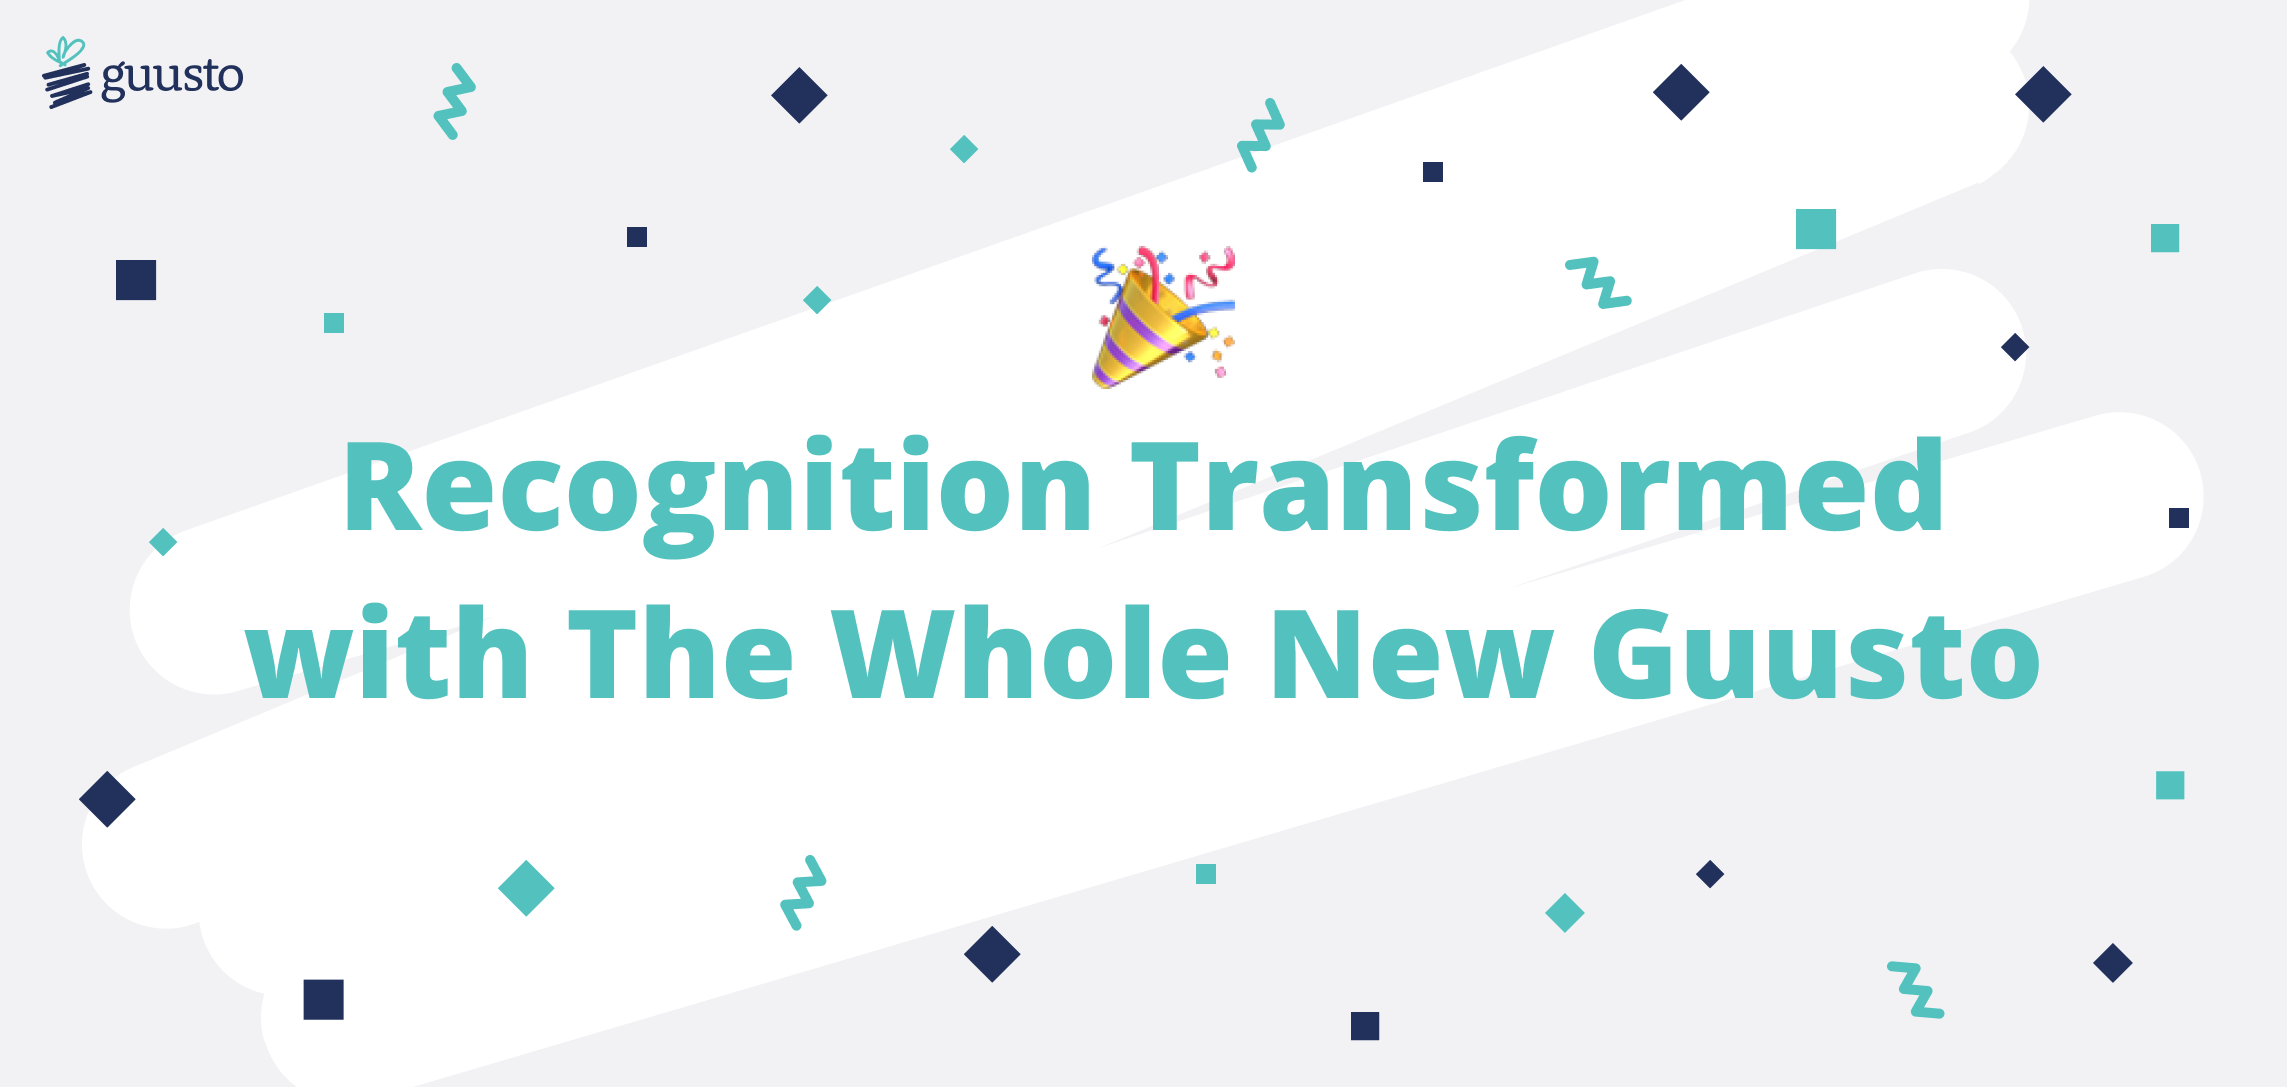 Recognition Transformed with the Whole New Guusto!